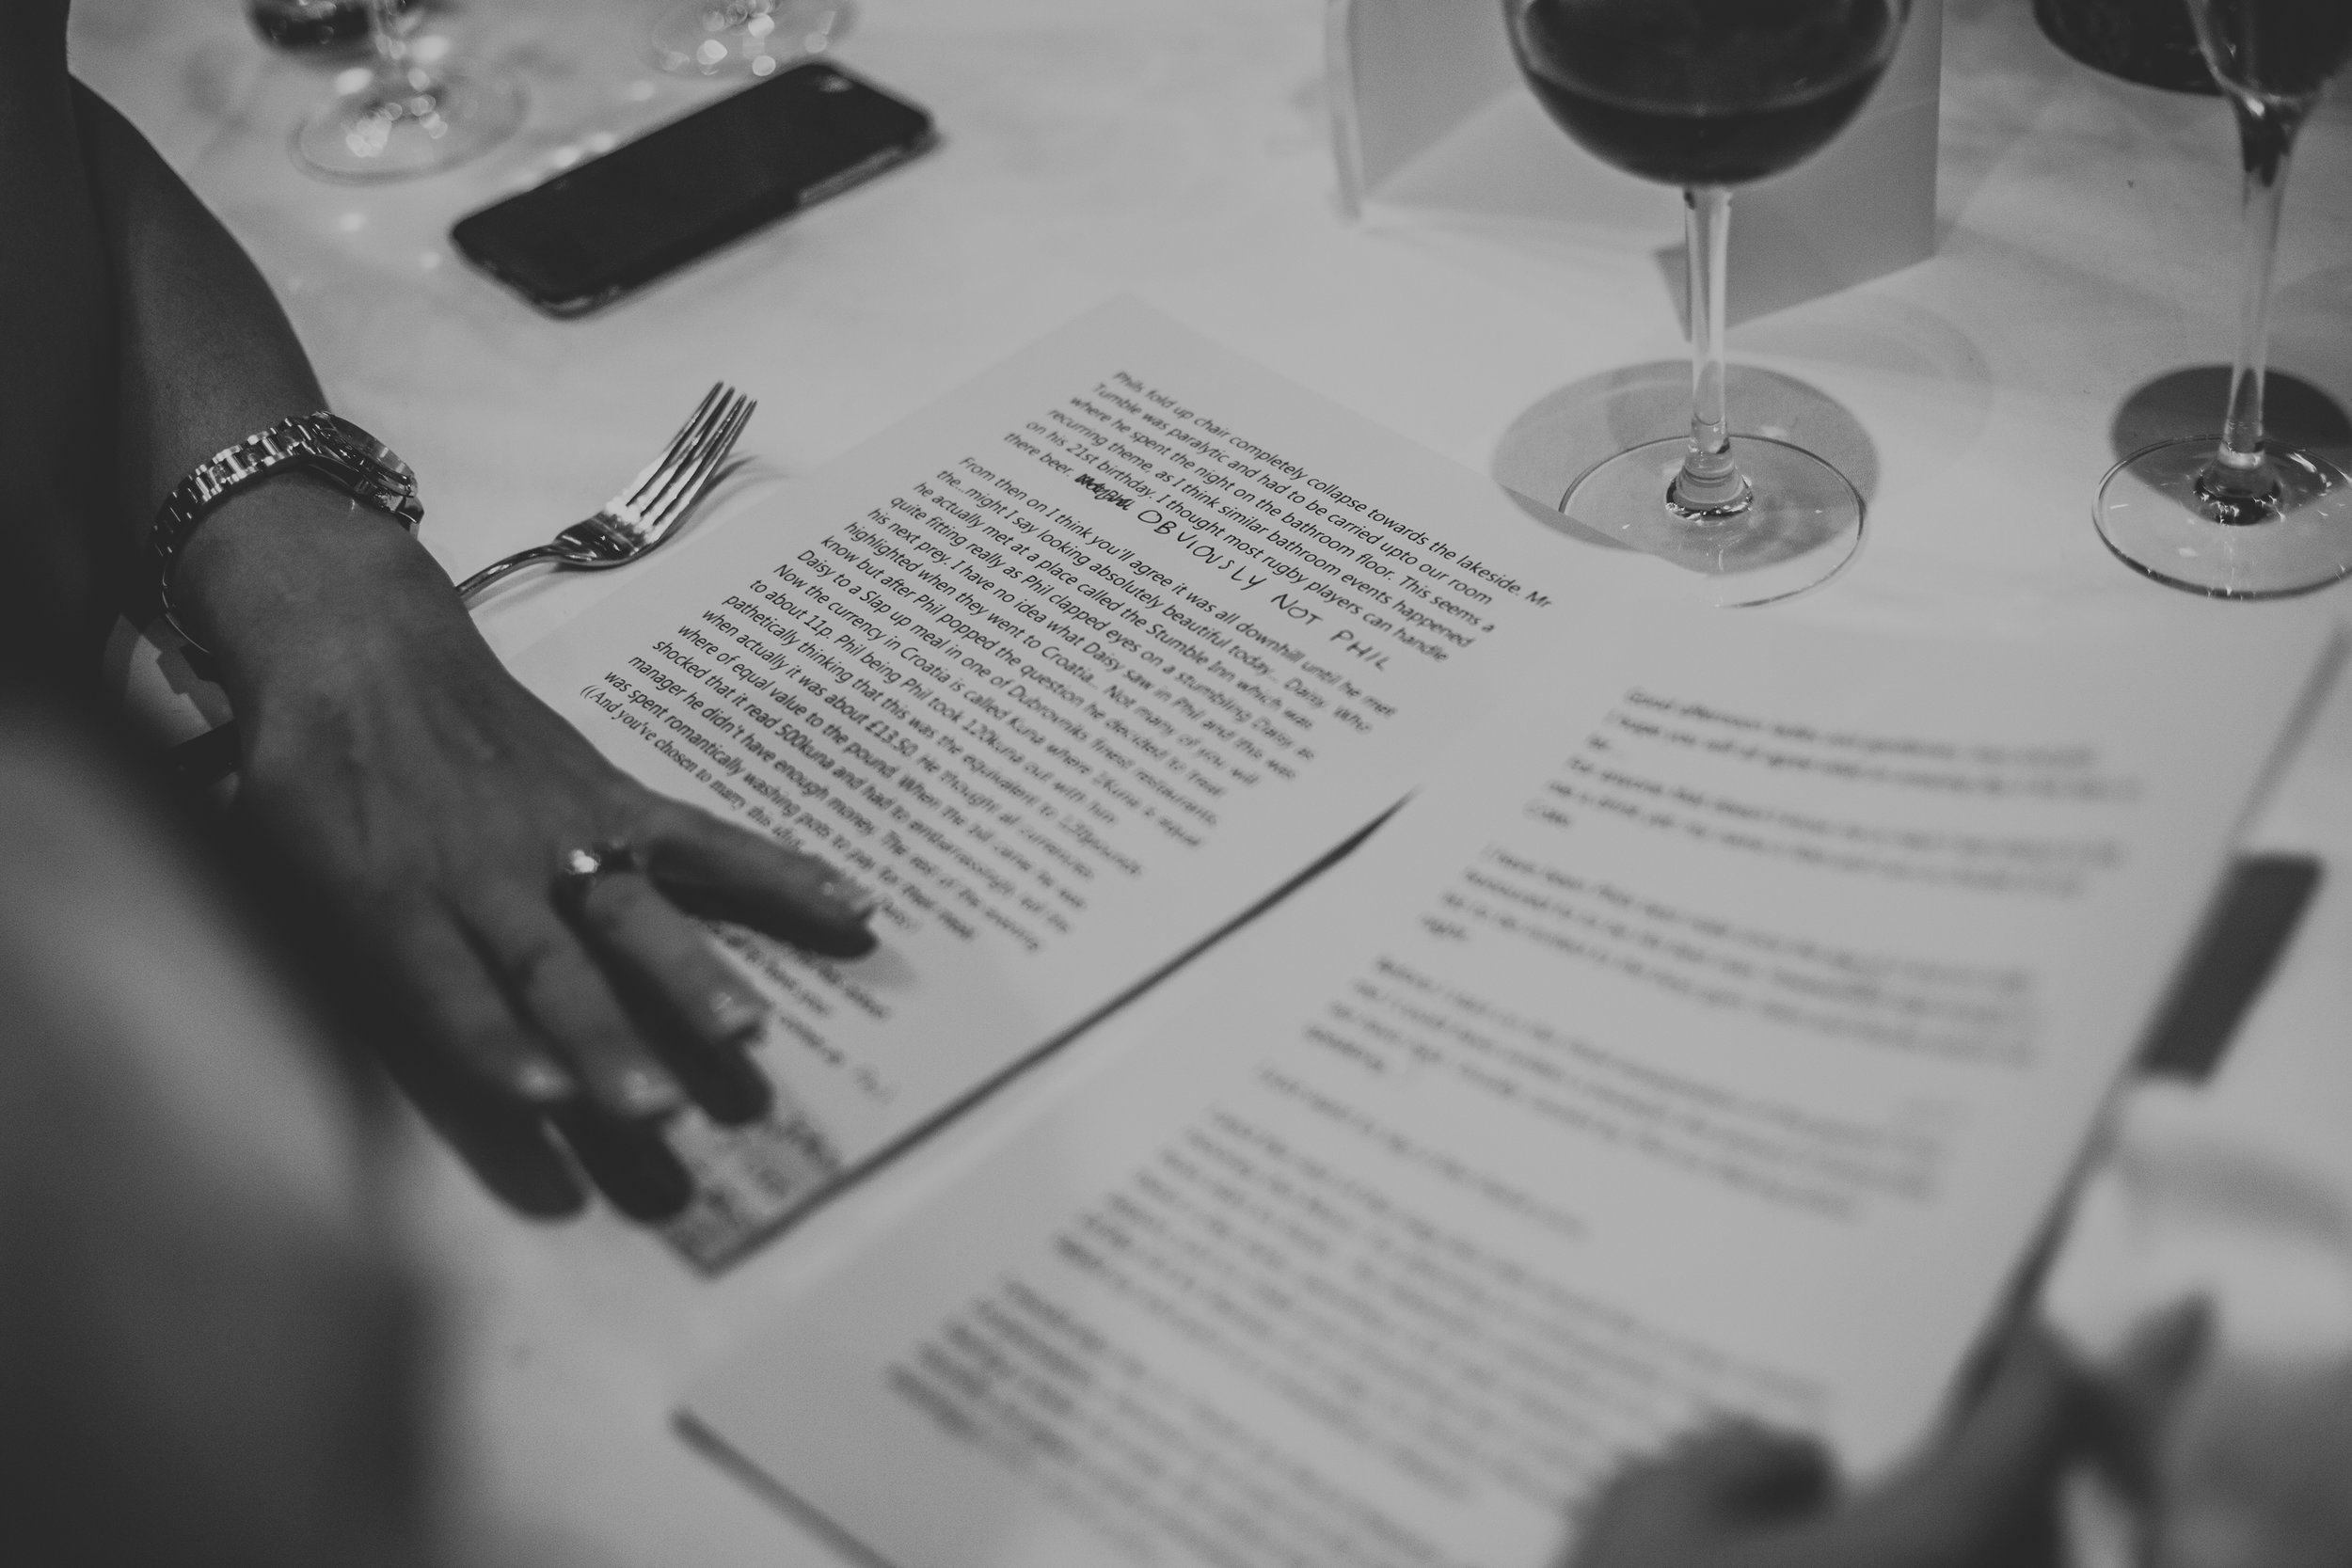 Speeches typed up on the head table.